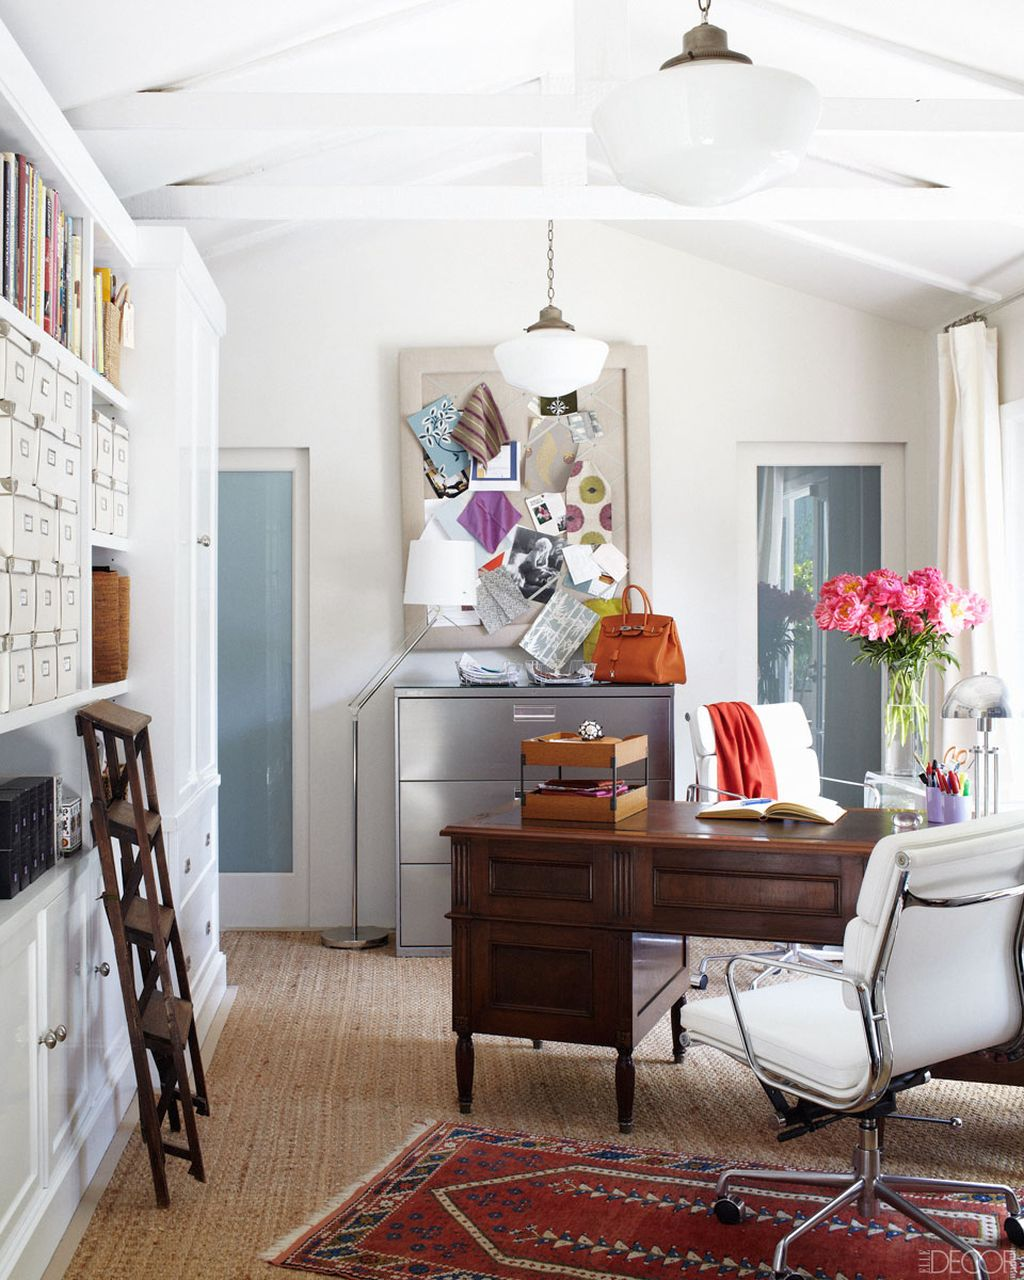 Home Design Ideas Pictures: 20 Inspiring Home Office Design Ideas For Small Spaces